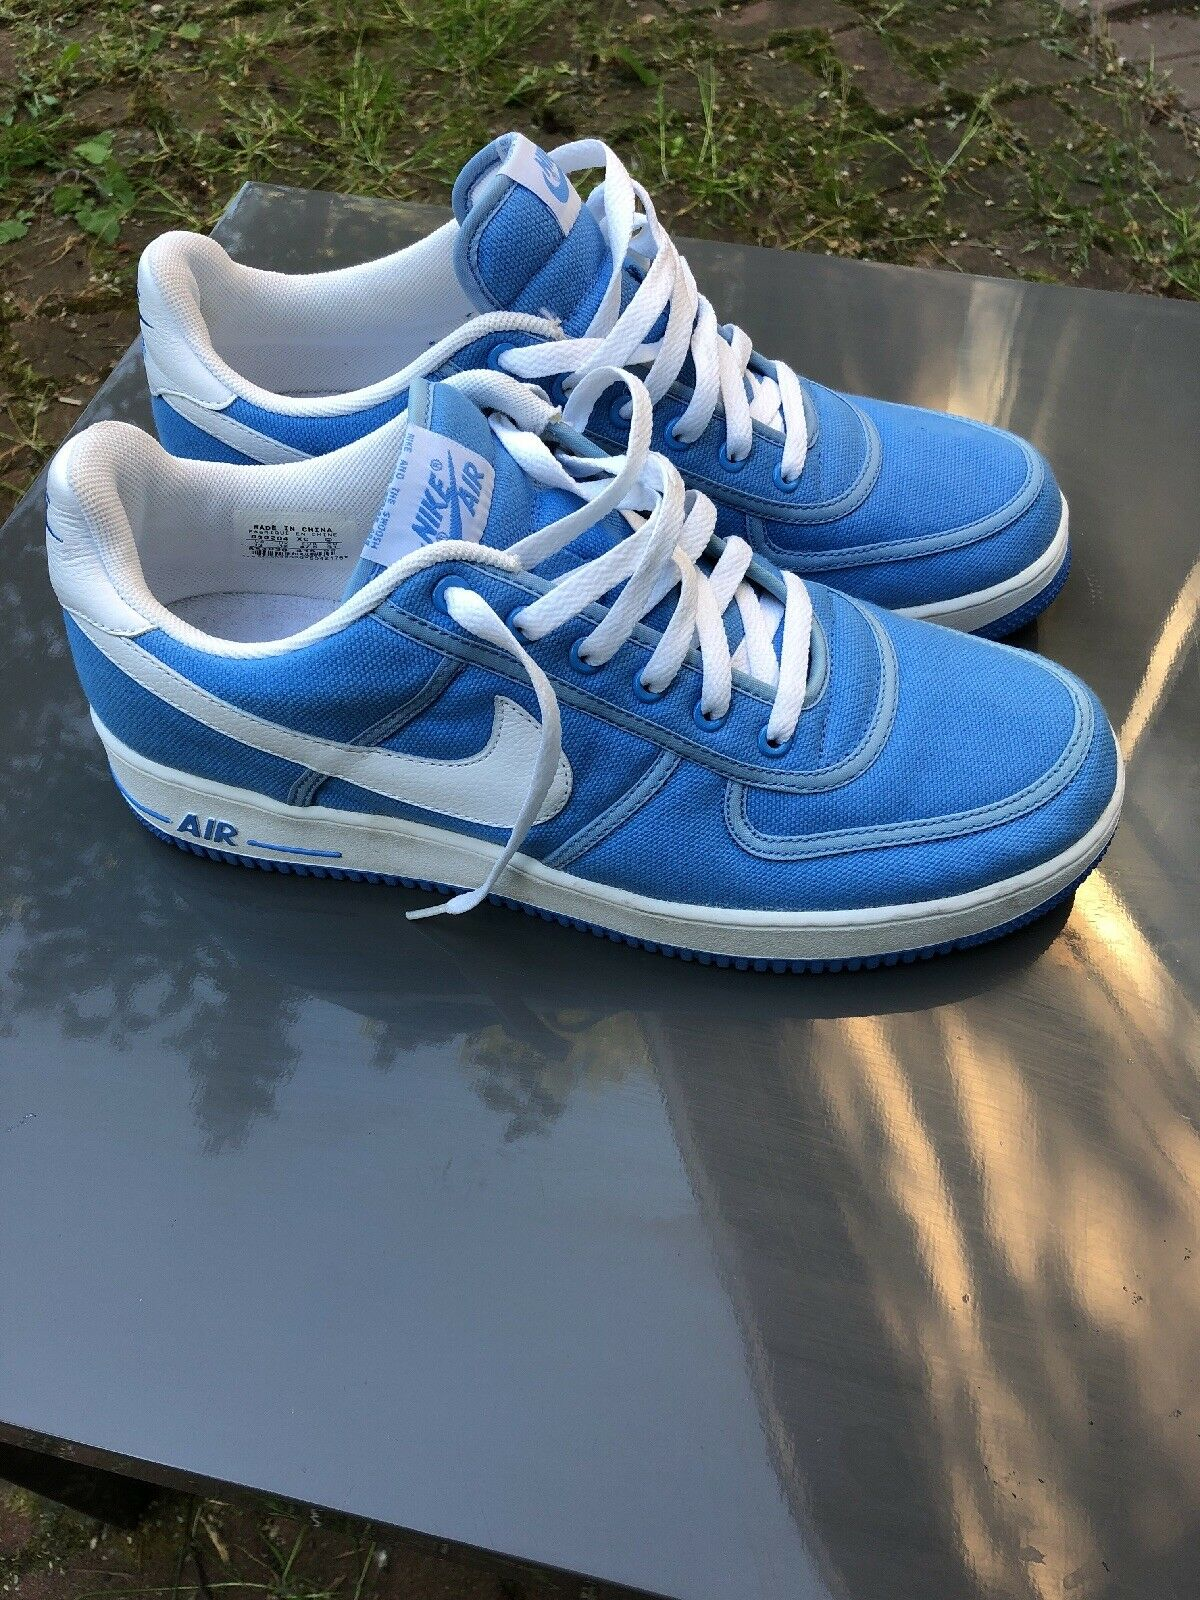 Air Force 1 basso Canvas (blu Carolina)  uomini 65533s;13  profitto zero